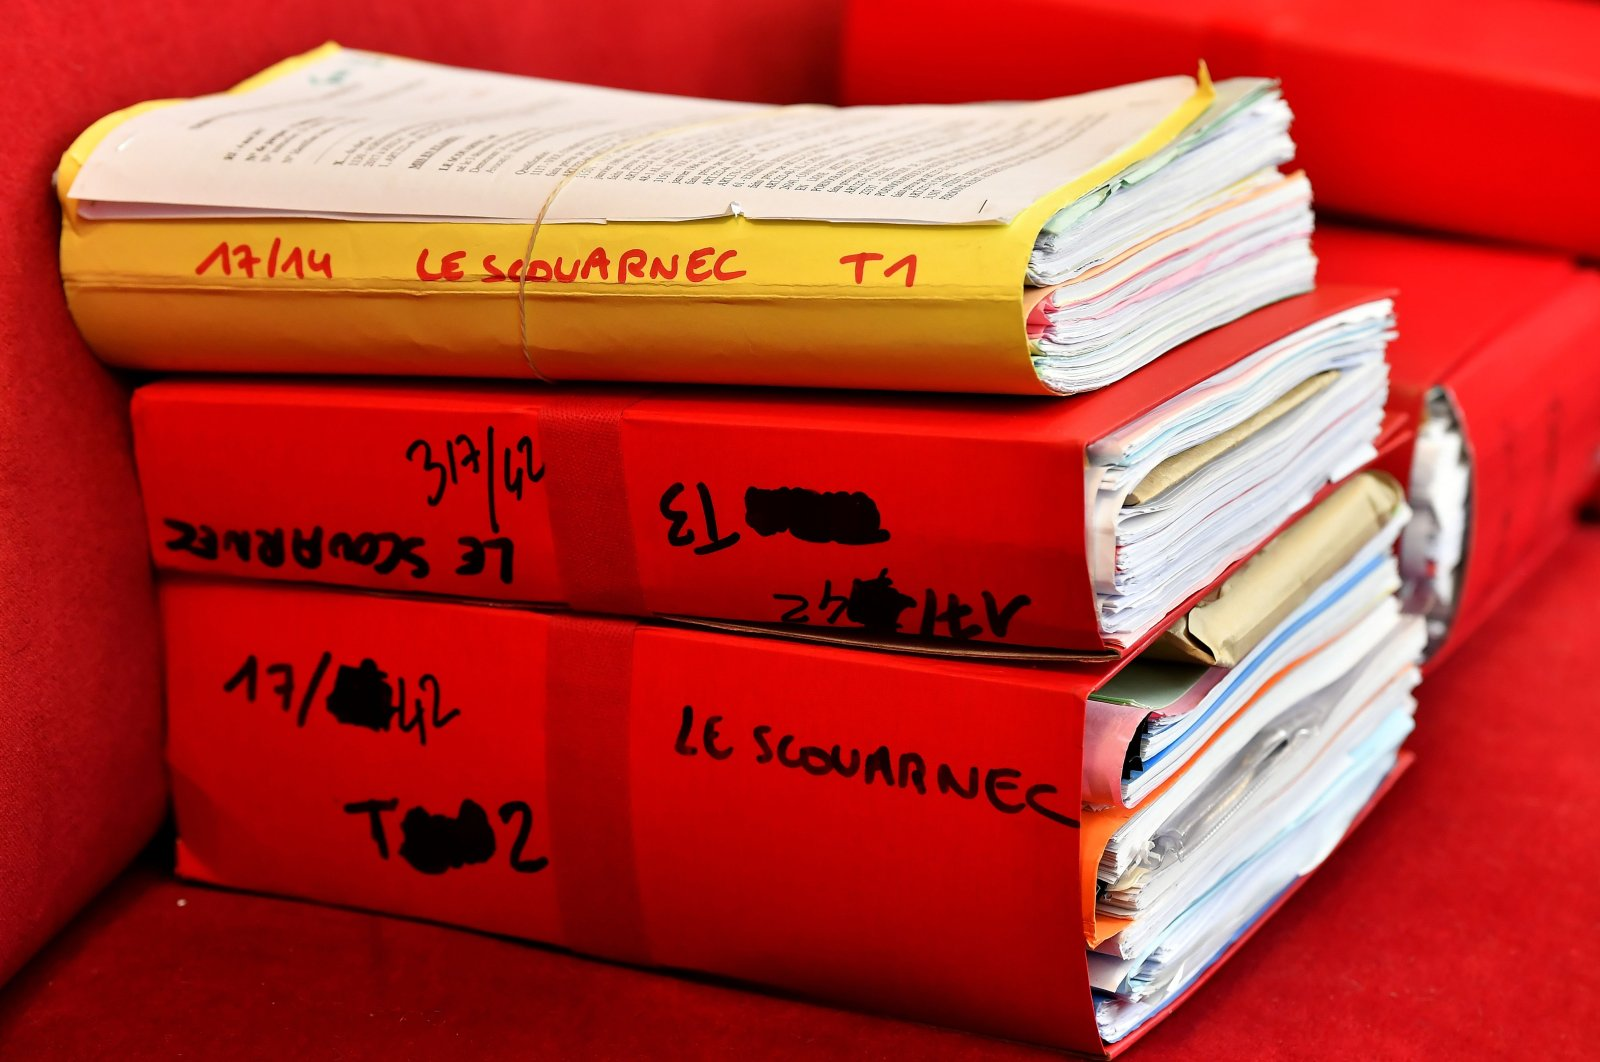 Files are displayed in the courtroom during the opening day of a French surgeon's trial for the rape and sexual abuse of four children, Saintes, March 13, 2020. (AFP Photo)